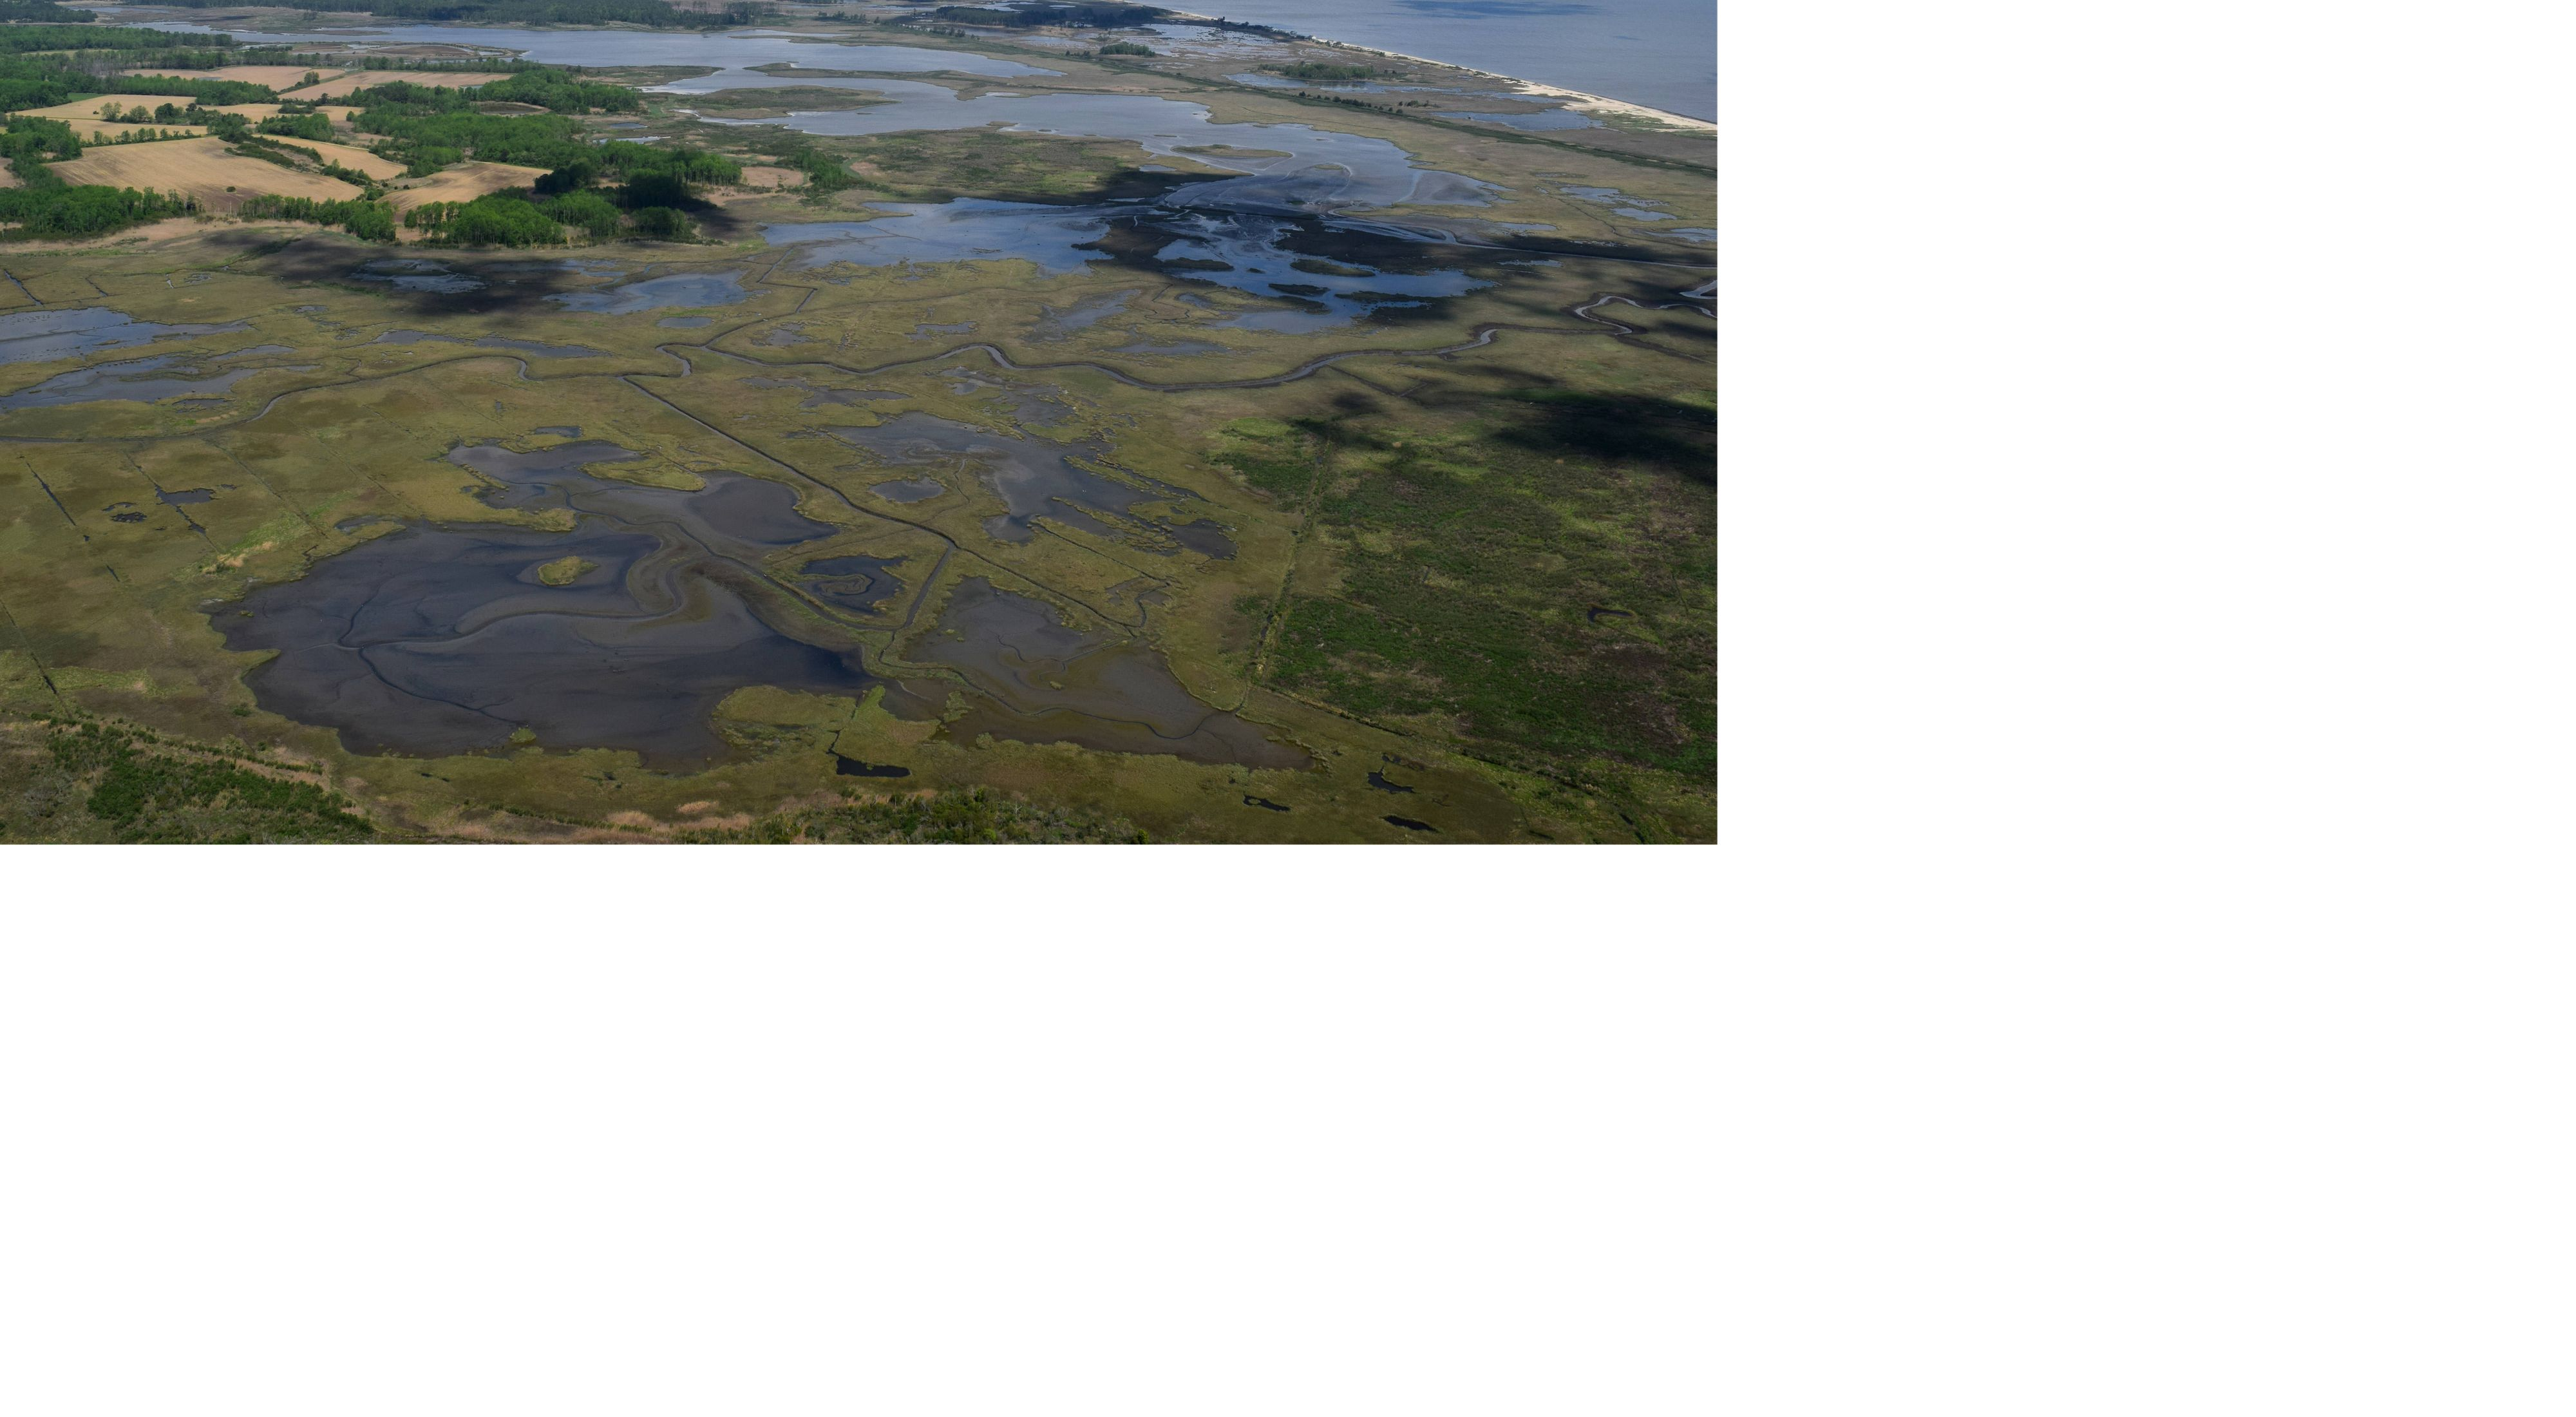 Aerial view of tidal marshlands at Milford Neck in Eastern Kent County Delaware.